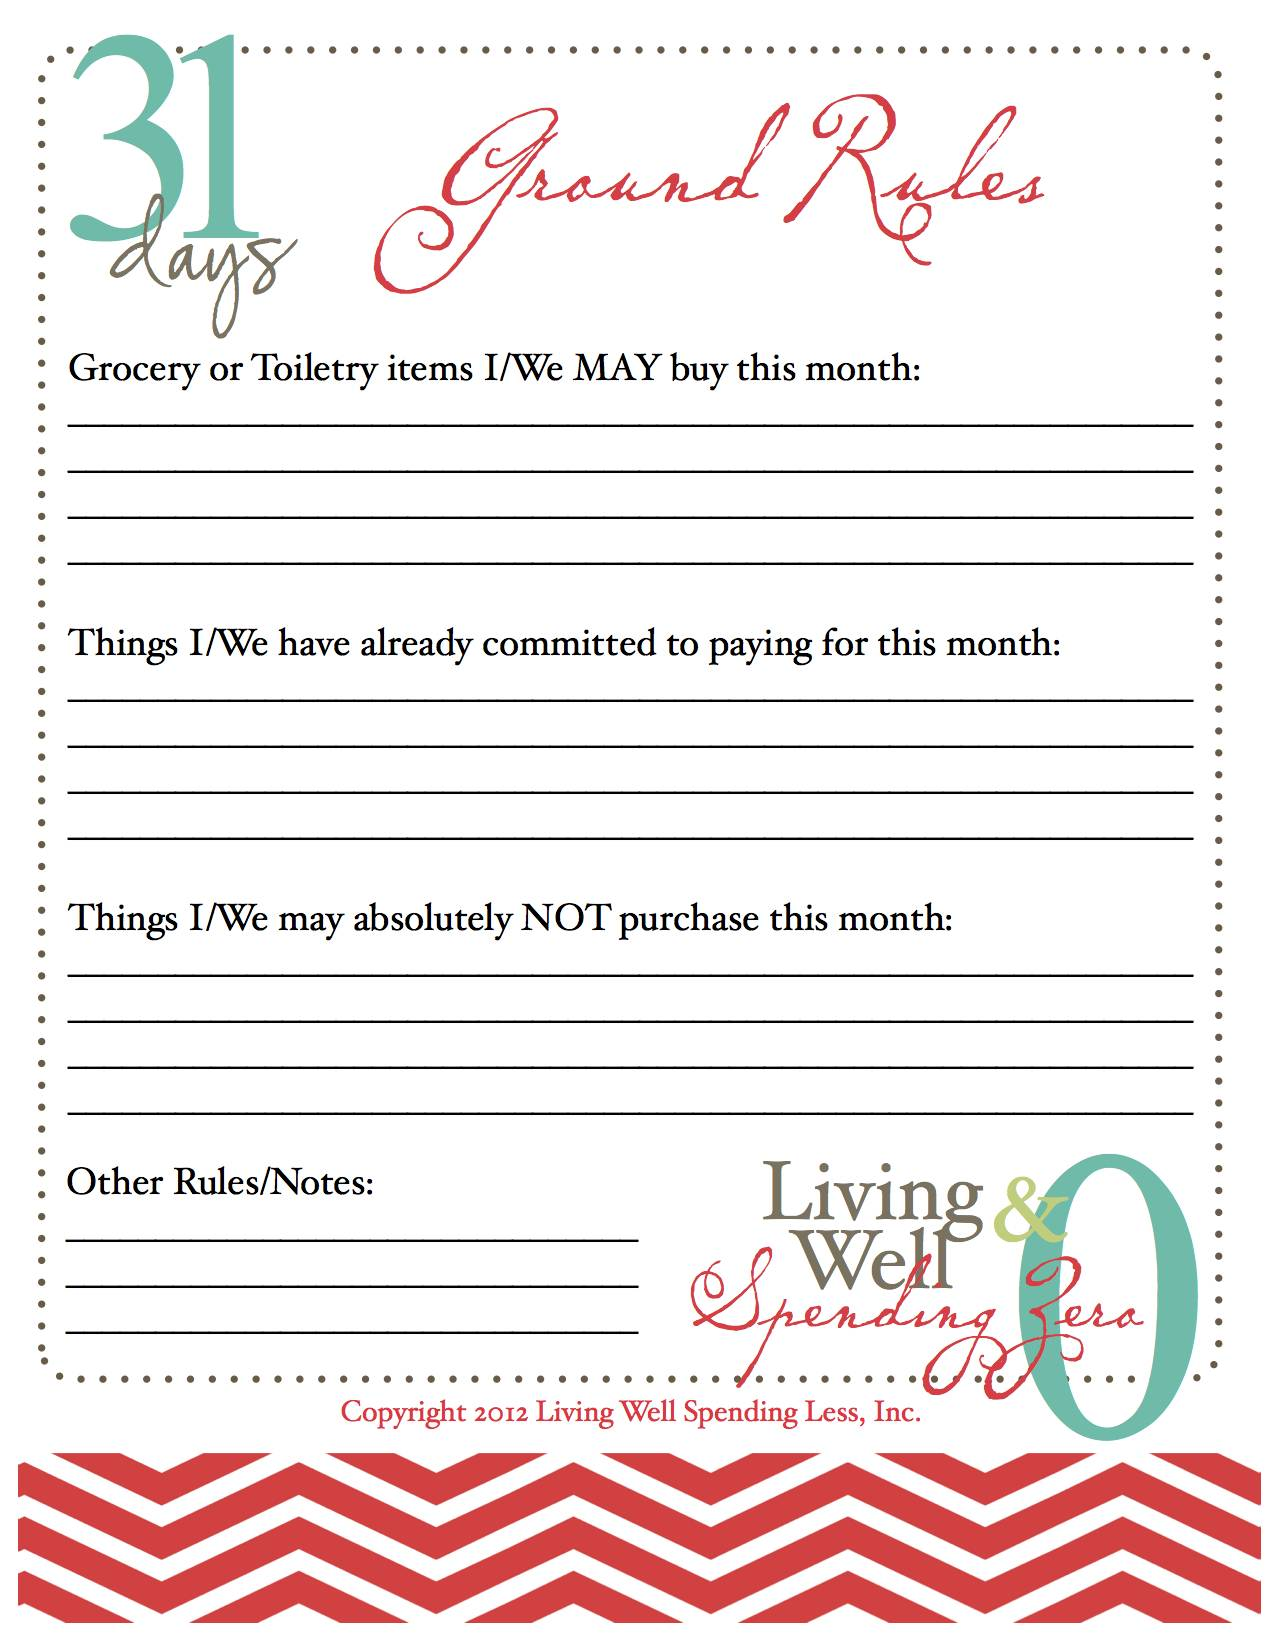 October Challenge Spending Freeze Living Better With Less